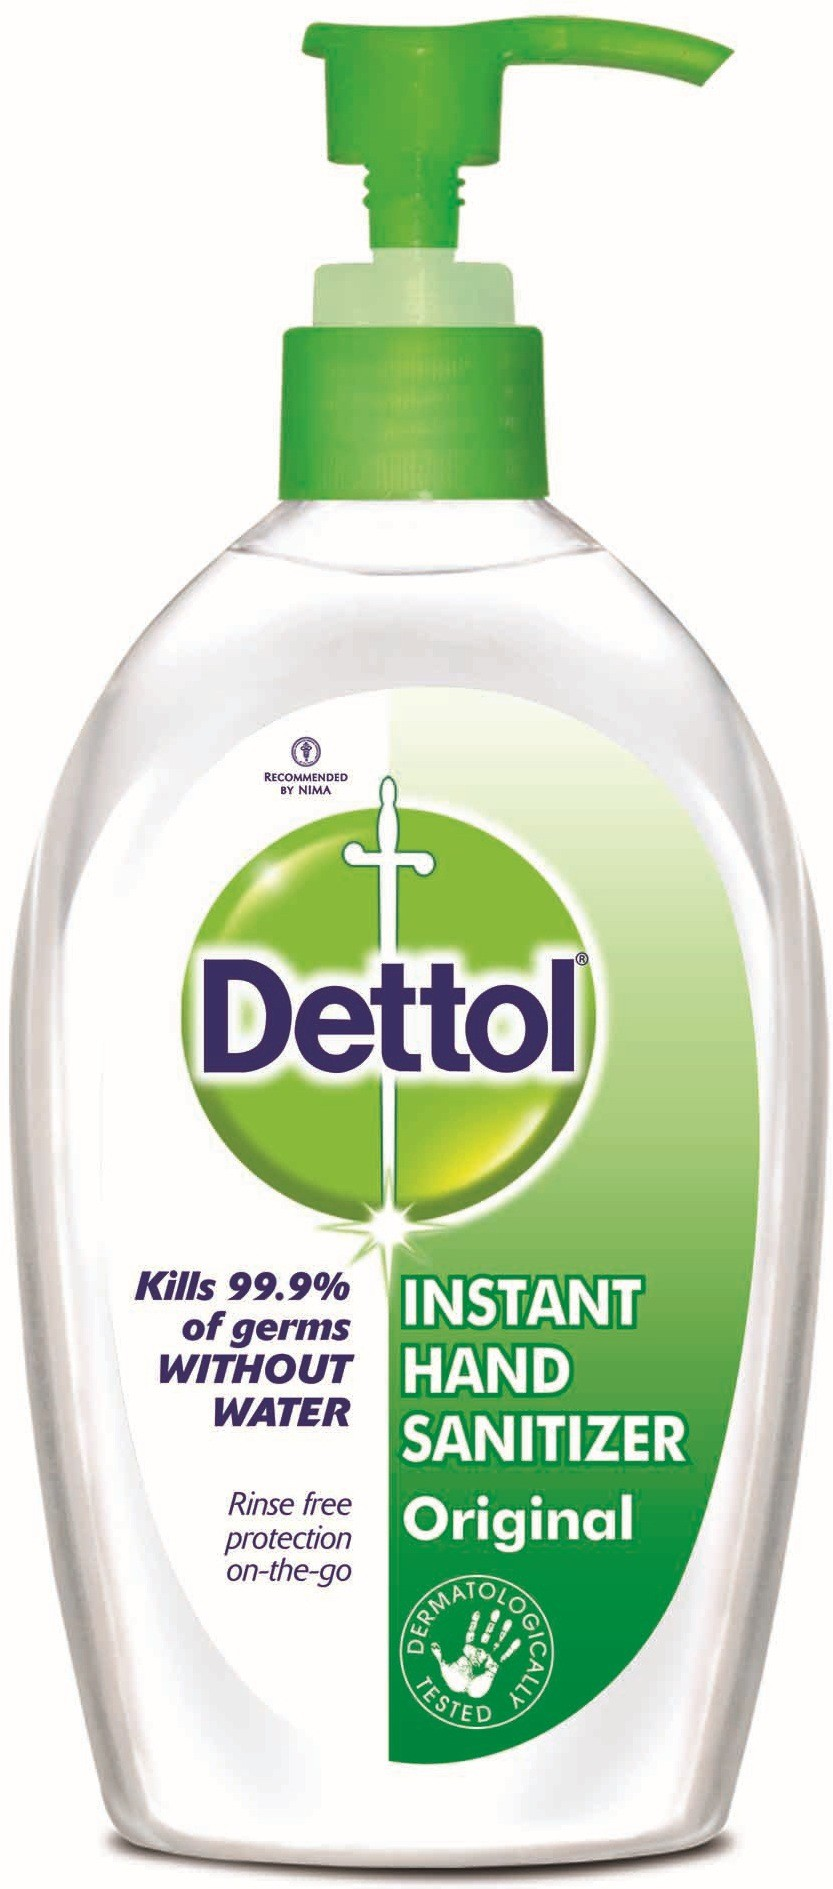 How To Make Dettol At Home